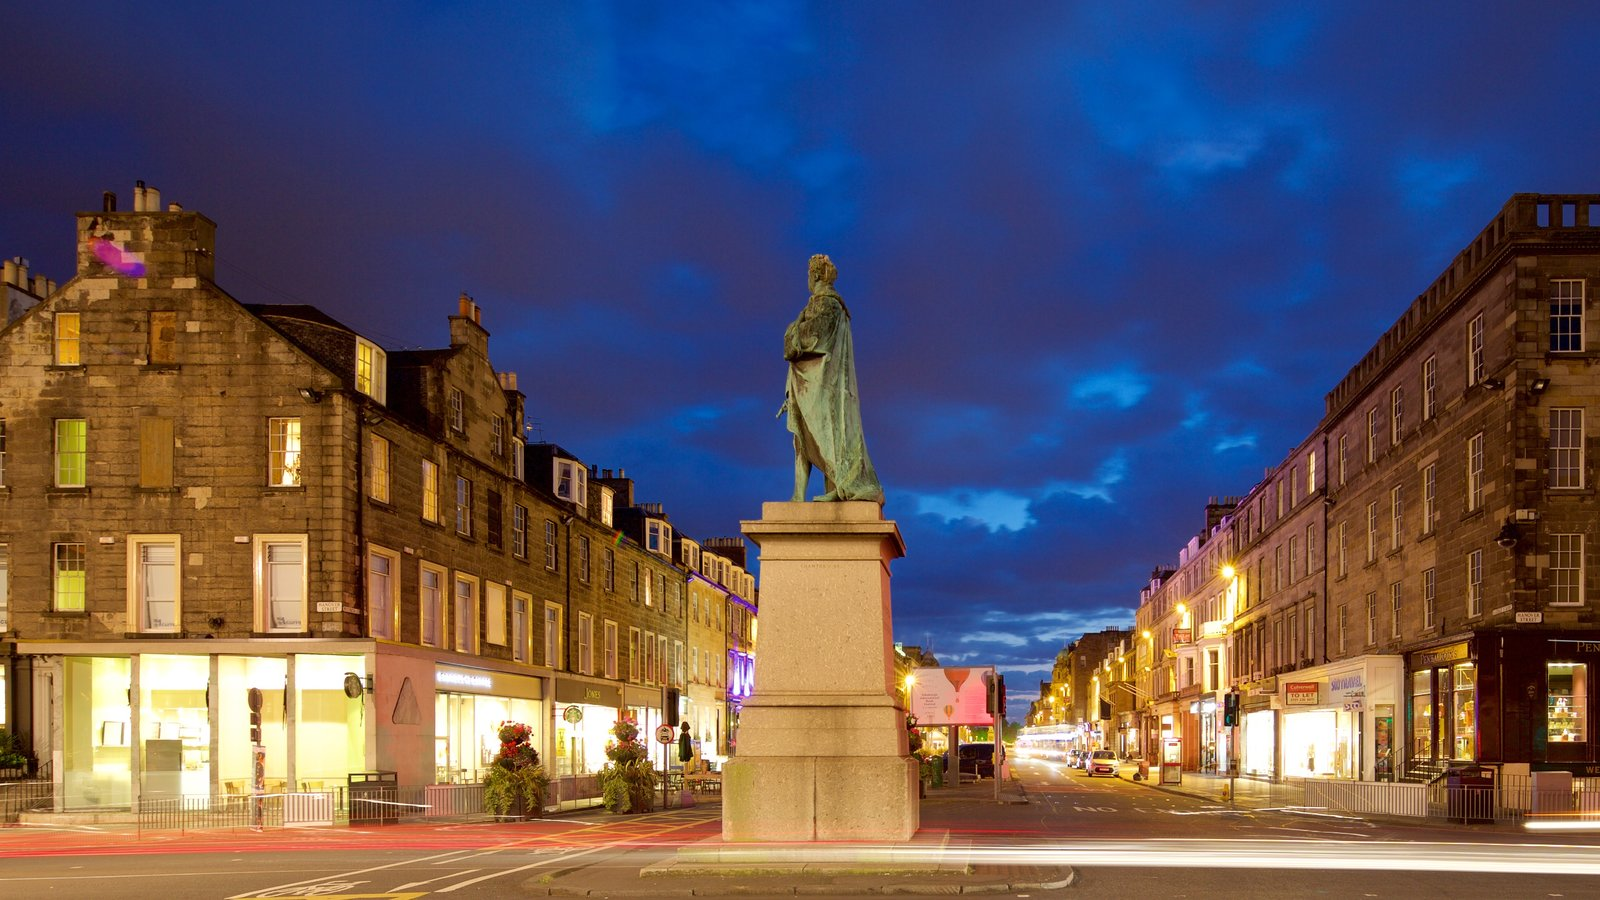 Edinburgh showing street scenes, night scenes and a monument